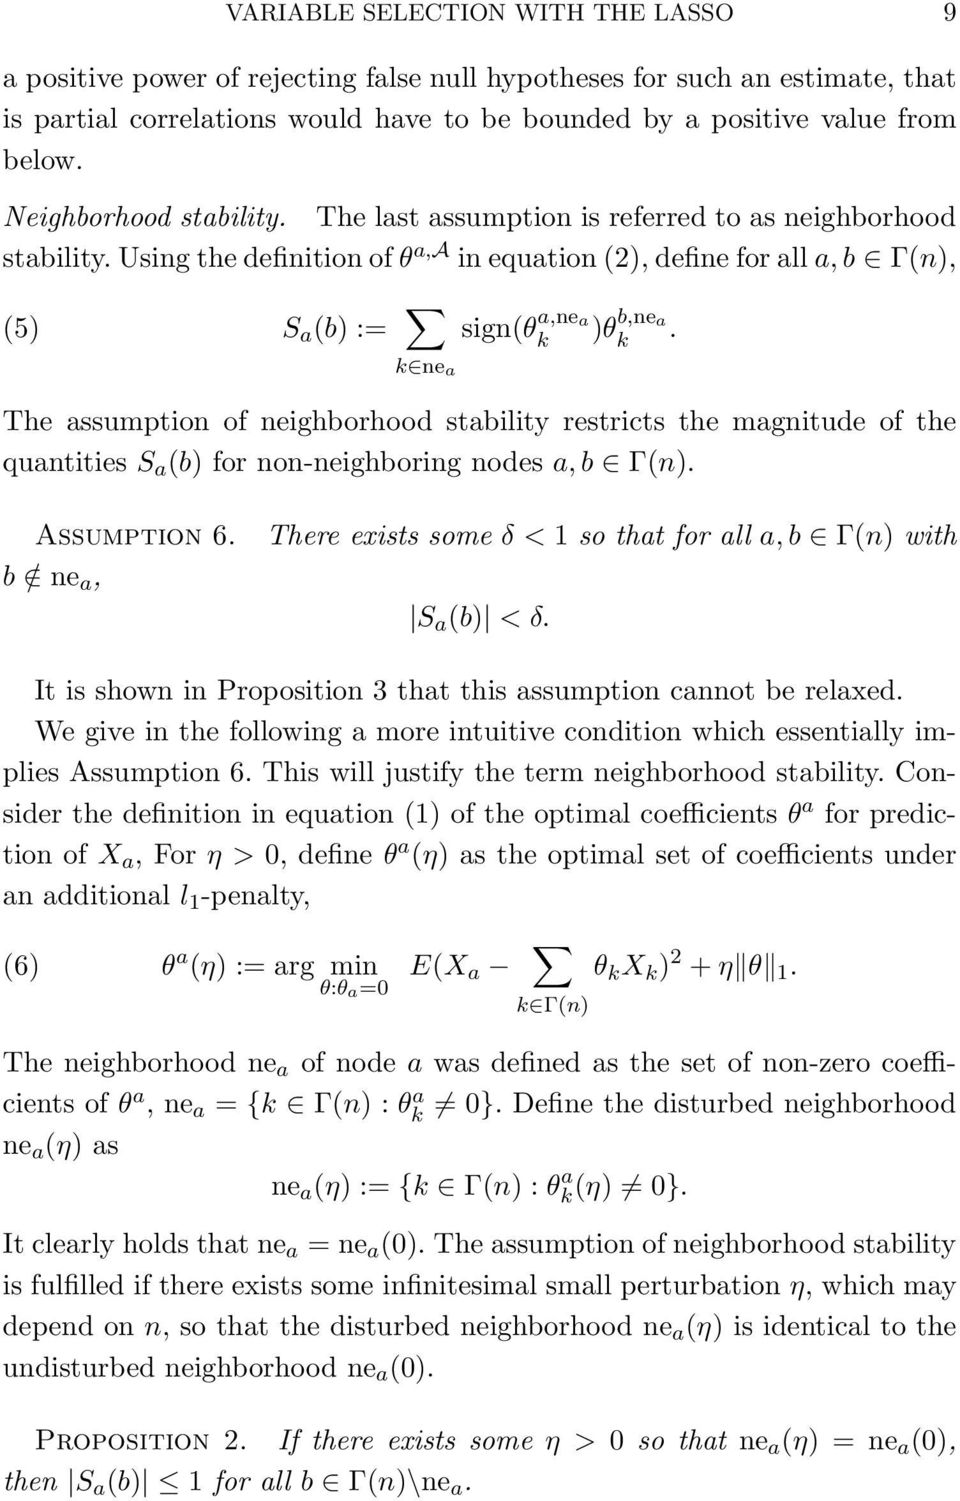 k ne a The assumption of neighorhood staility restricts the magnitude of the quantities S a () for non-neighoring nodes a, Γ(n). Assumption 6.